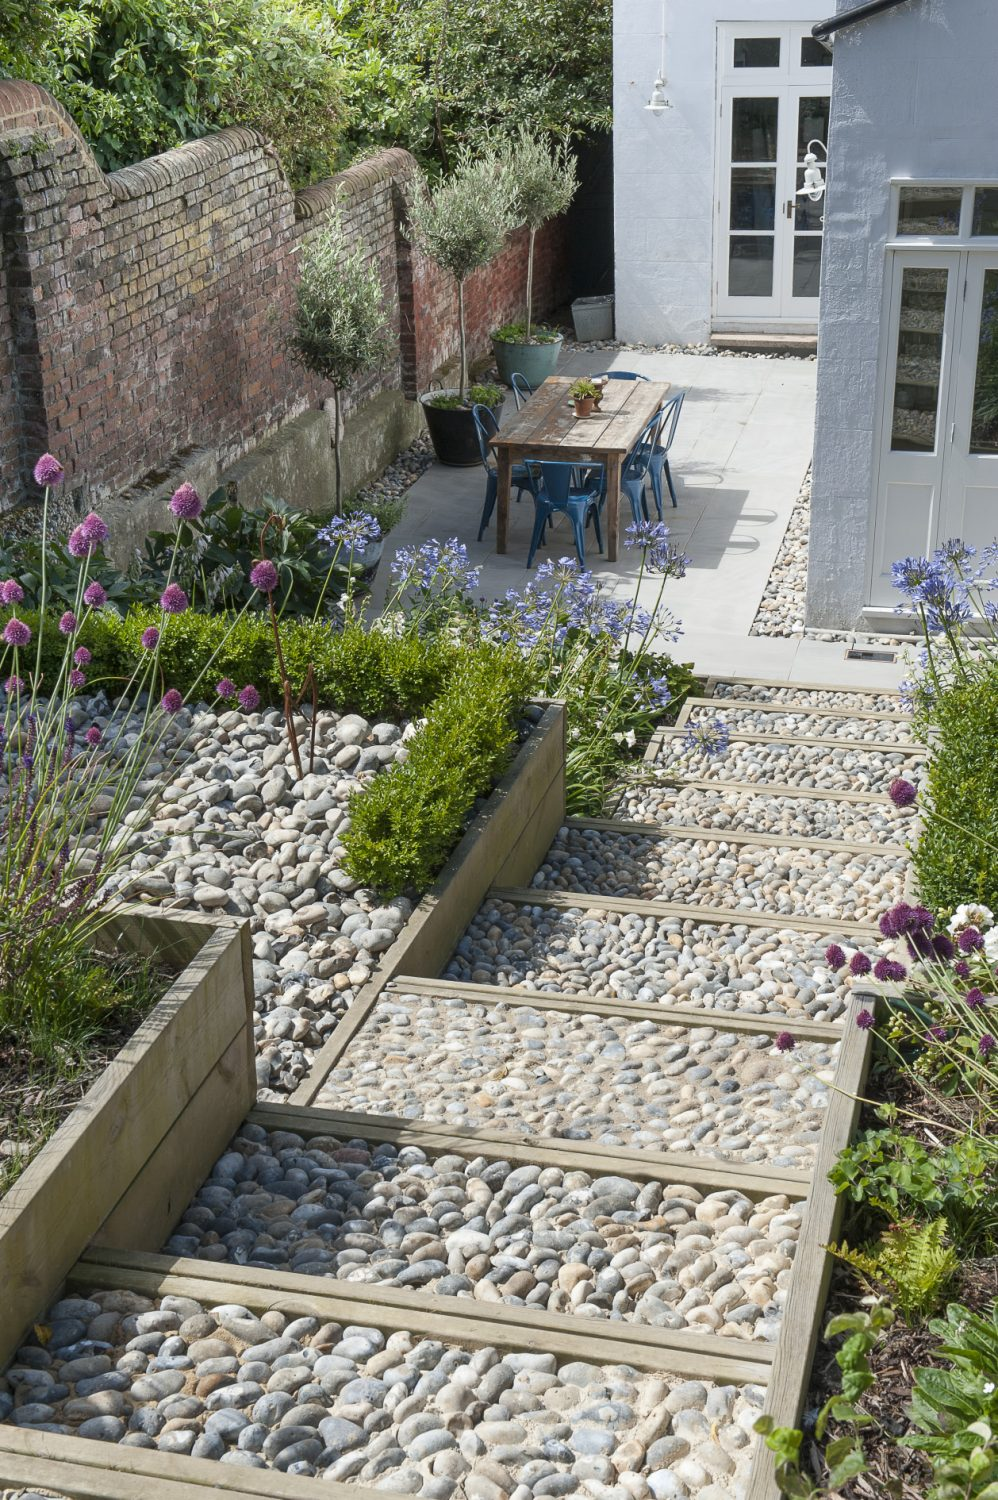 Putting her love of Gardener's World to good use Annette has created a garden using a refined and careful palette of colours. It's brimming with seasonal colour, offset by an effective combination of pebbles, wood and Indian sandstone and packed with an exuberant planting of agapanthus, allium sphaerocephalon and campanula